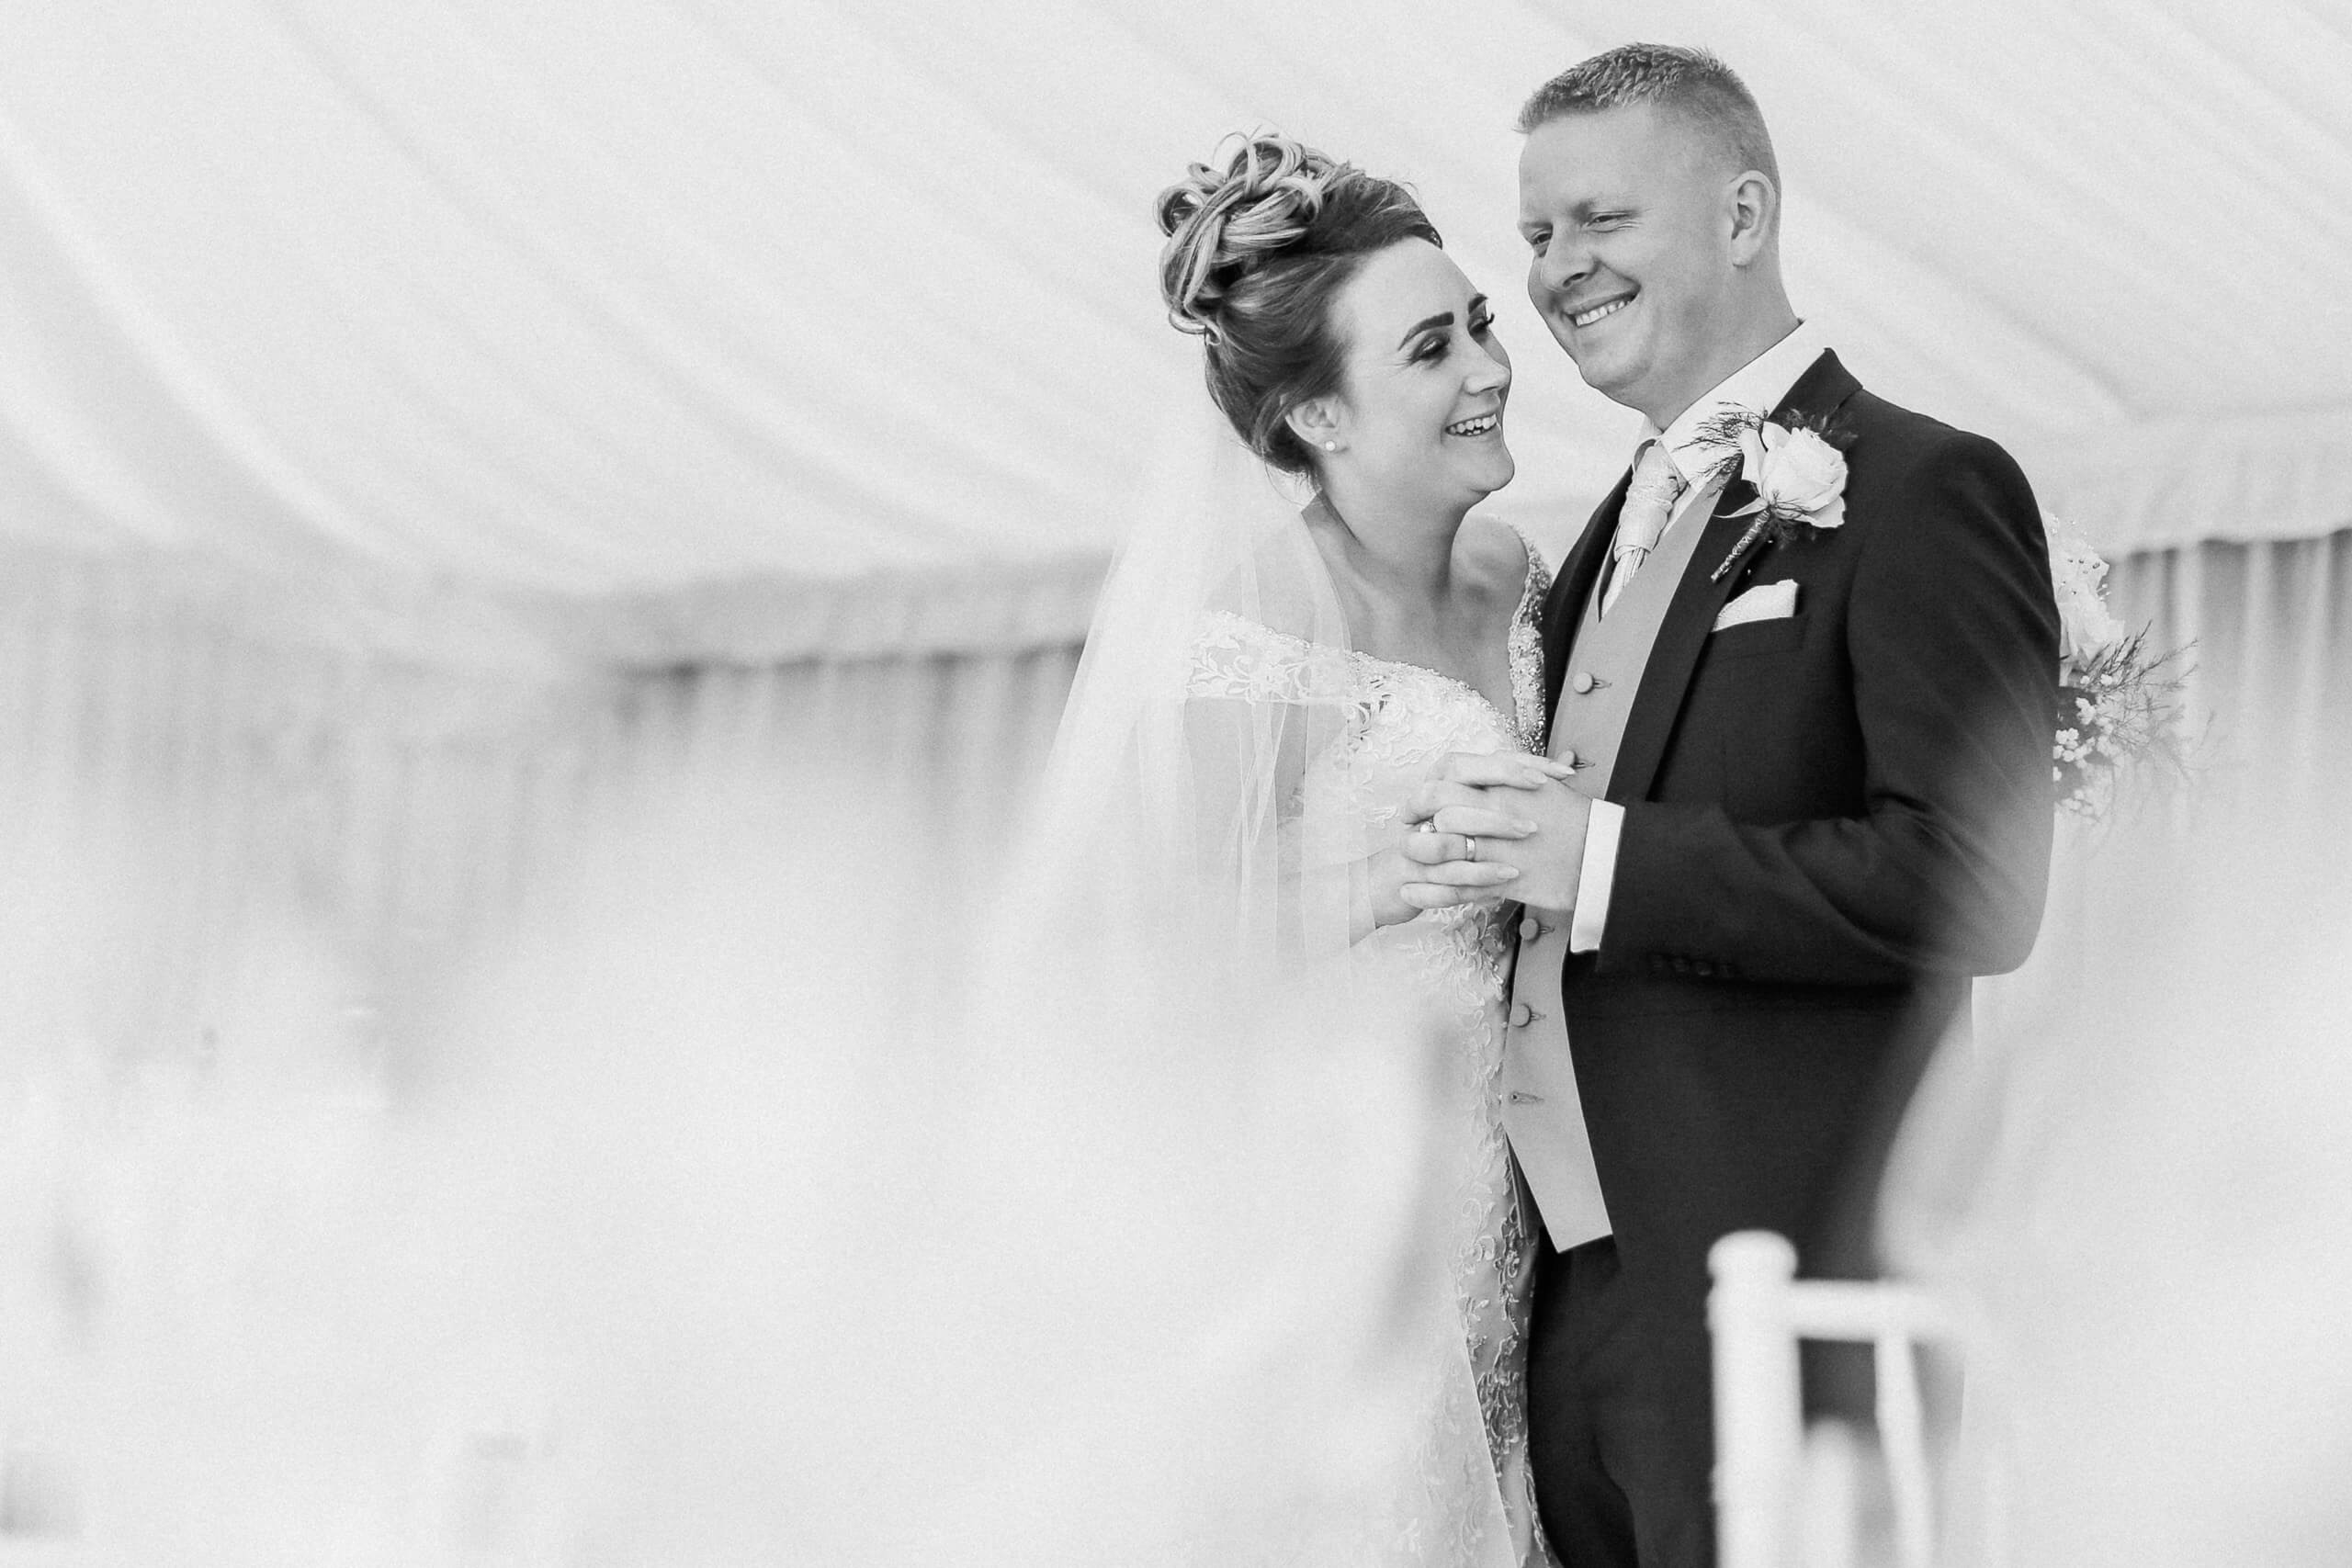 marquee farmhouse wedding Lancashire. Black and white natural photo of bride and groom Family farm Lancashire marquee wedding photography